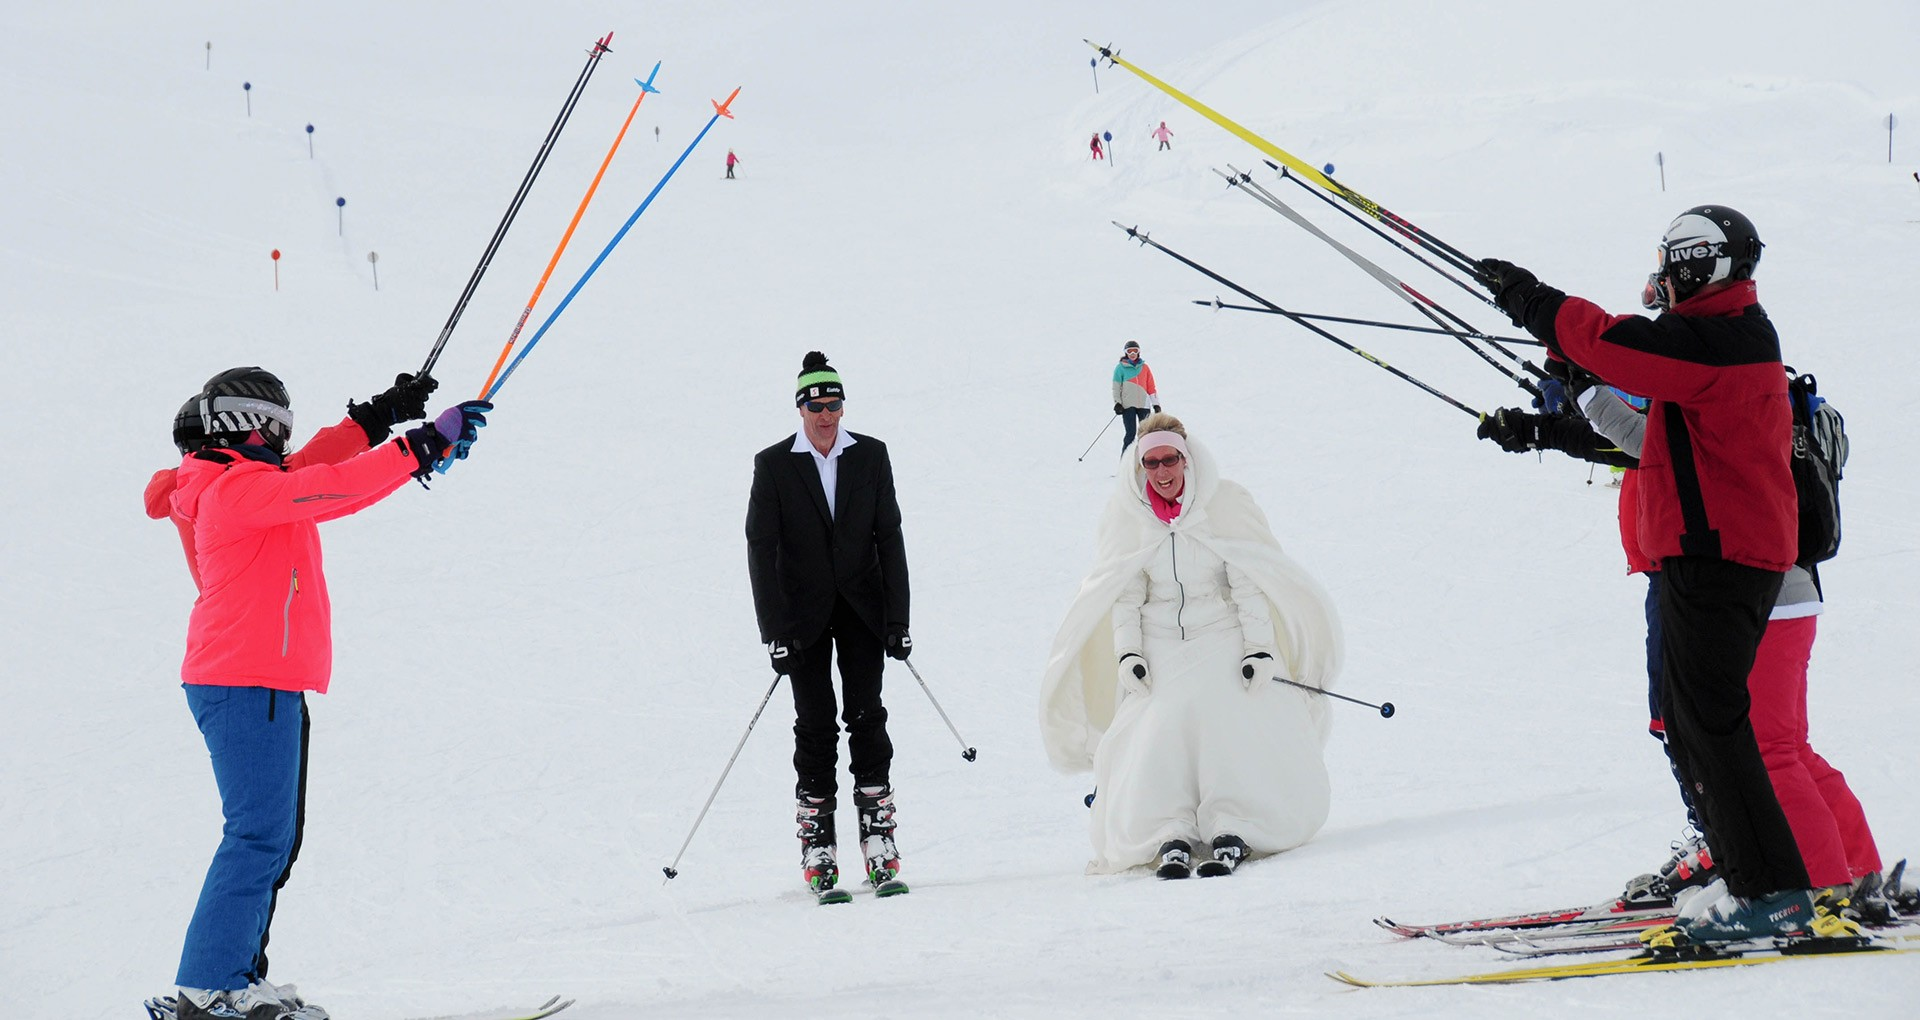 Wedding Ceremony in Austria's Highest Registry Office followed by Downhill Skiing